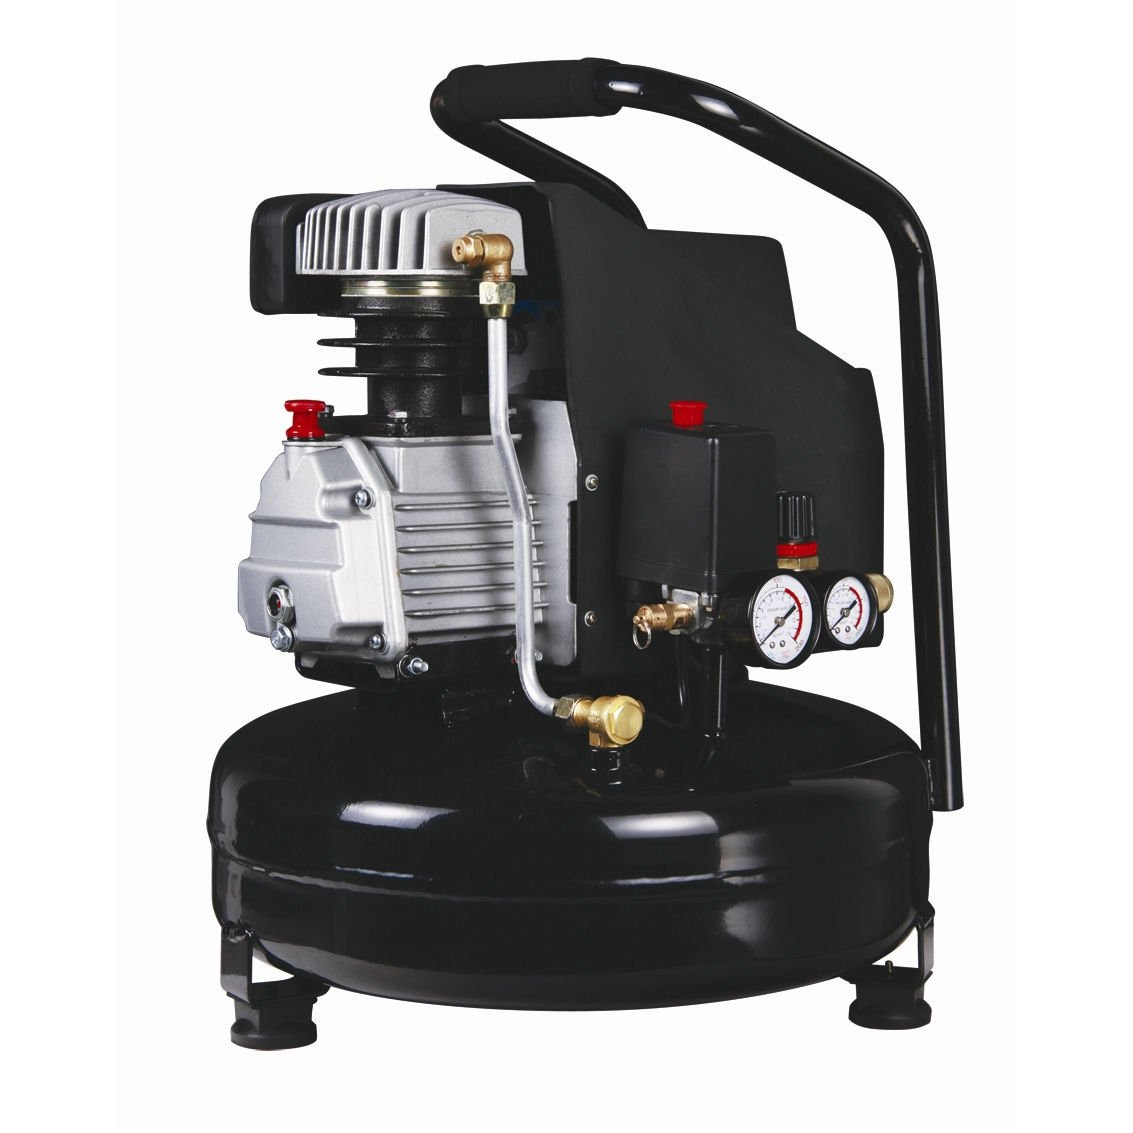 2HP Pancake Air Compressor - 4 Gal, 4.2 SCFM @ 90 PSI by True Power